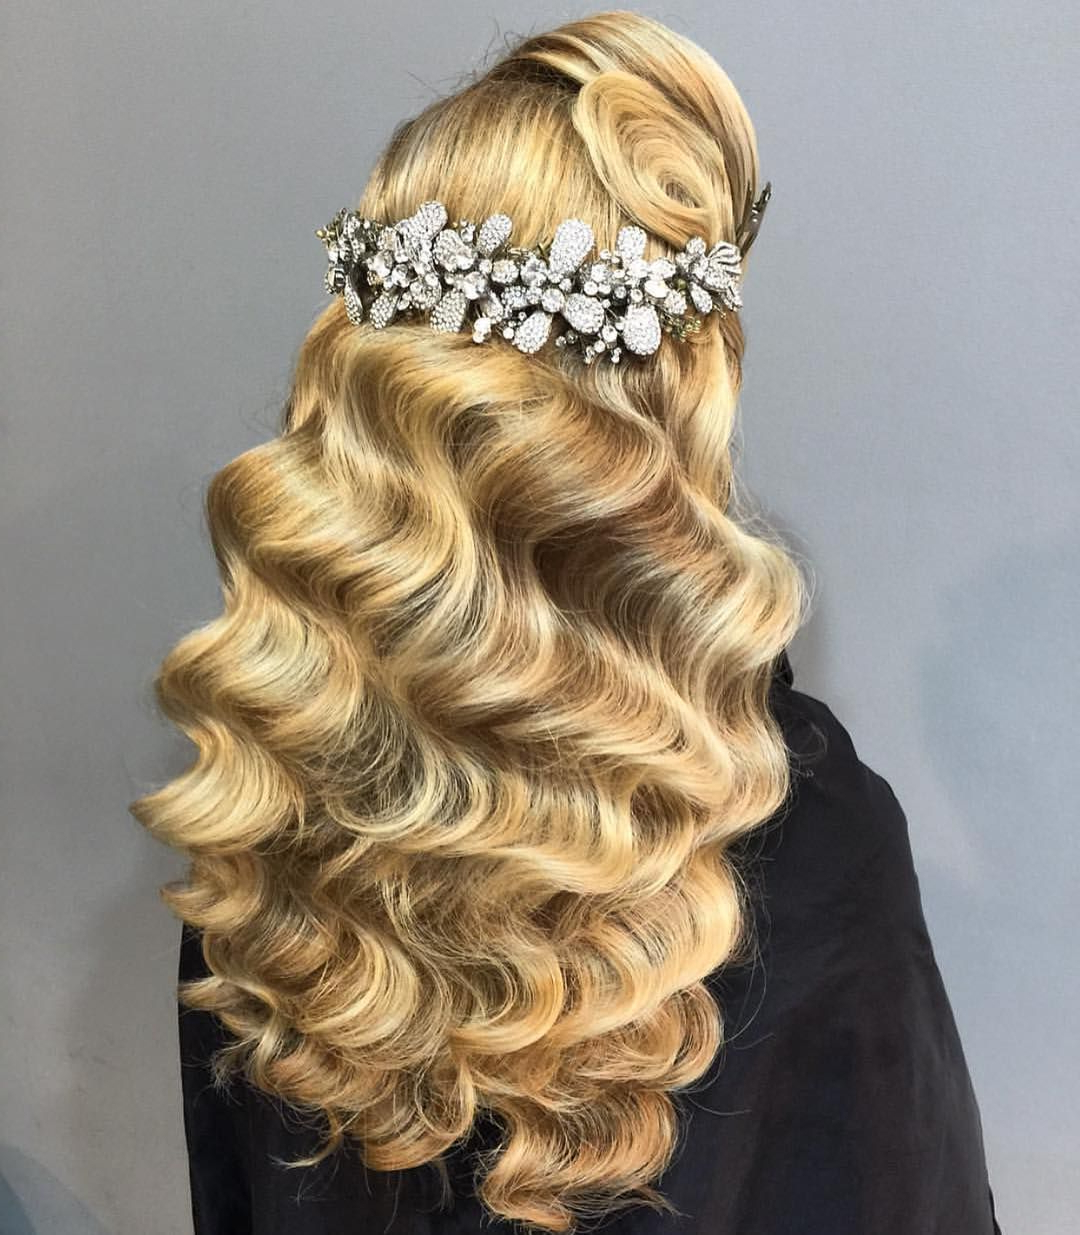 Wedding Hairstyles, Half Up Throughout Most Current Dimensional Waves In Half Up Wedding Hairstyles (View 19 of 20)